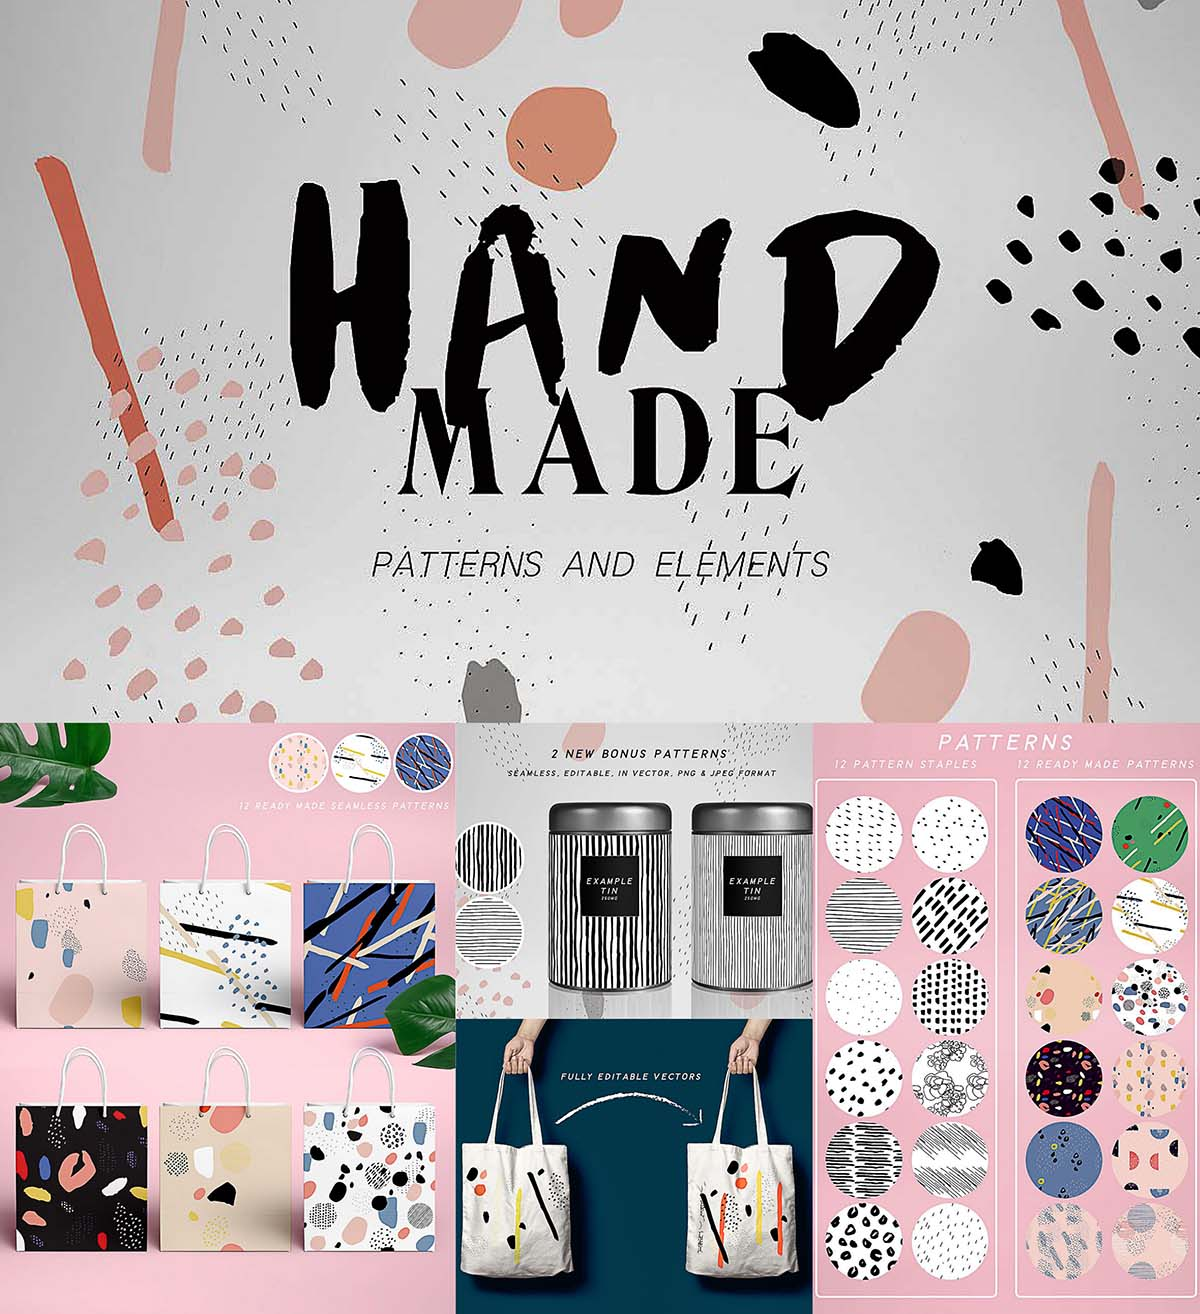 Hand made patterns and elements collection